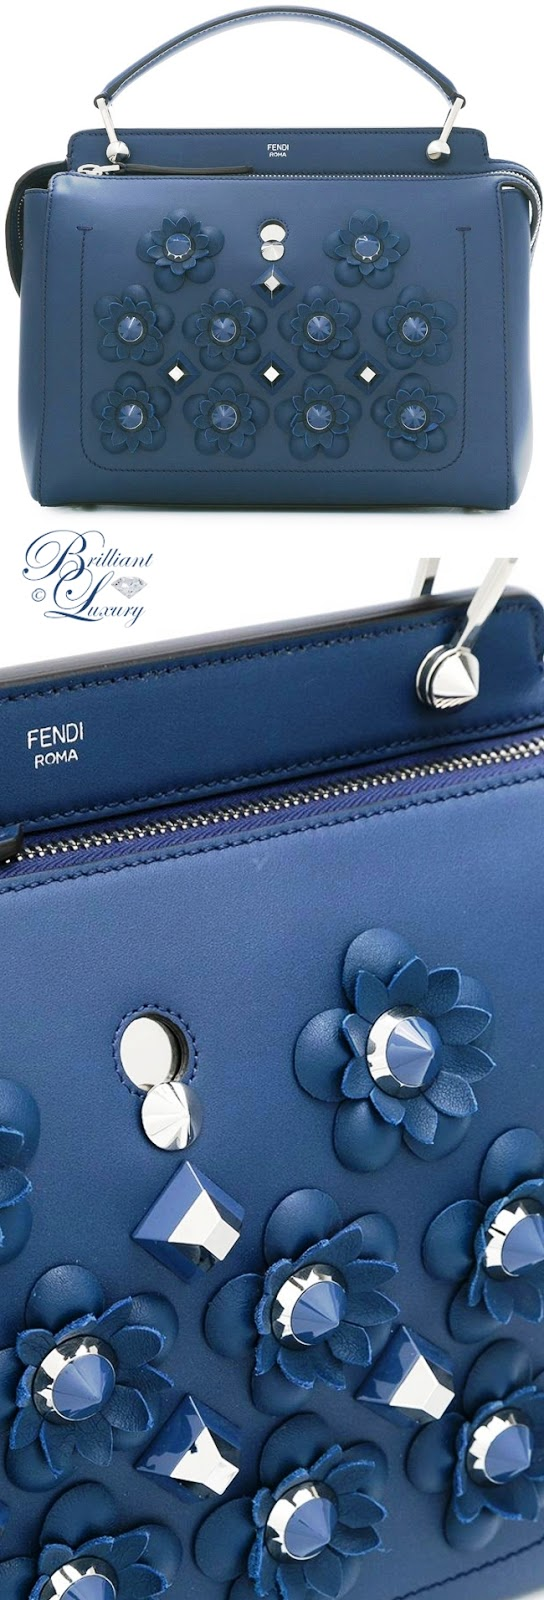 Brilliant Luxury ♦ Fendi Dotcom With Flowerland Flowers